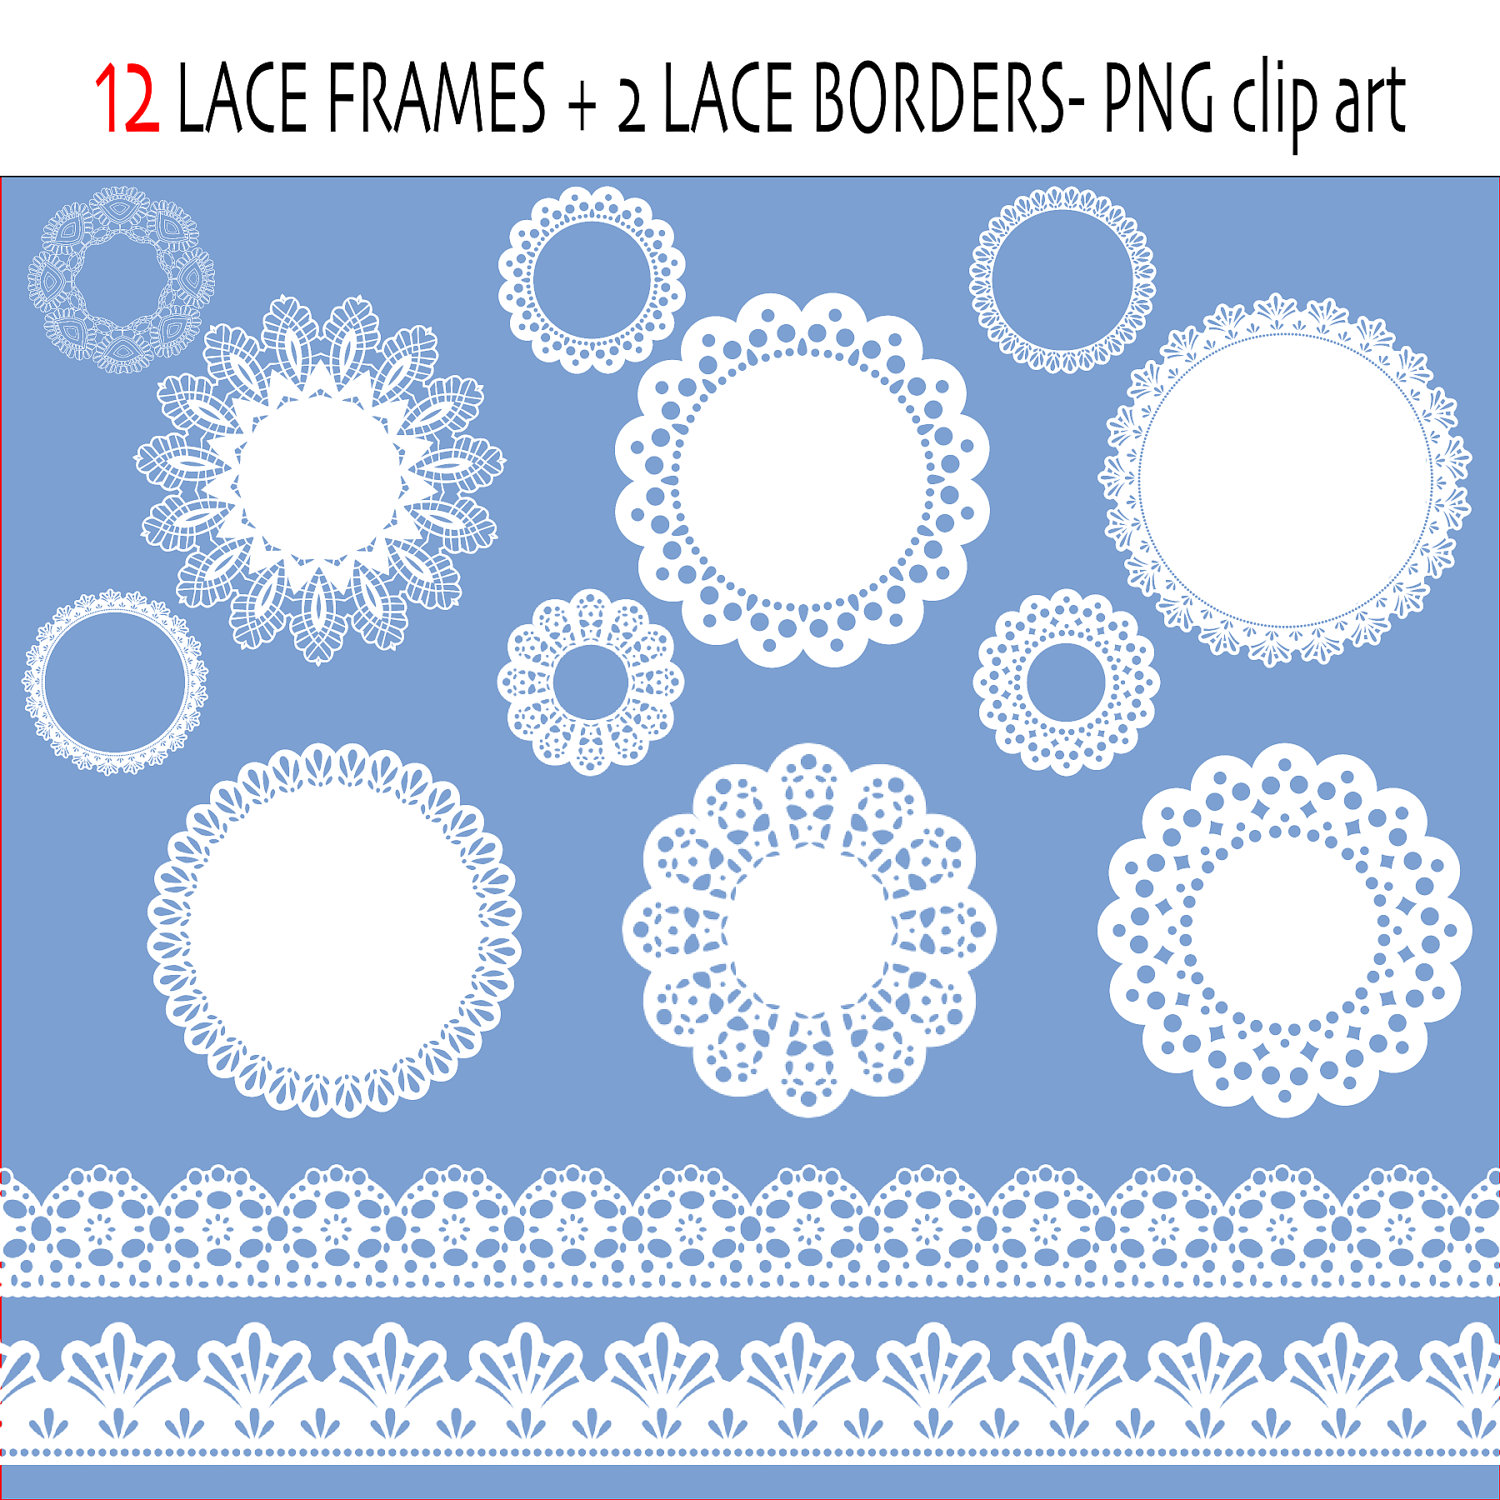 Lace clip art labels or frames, lace ribbon, lace borders in white.